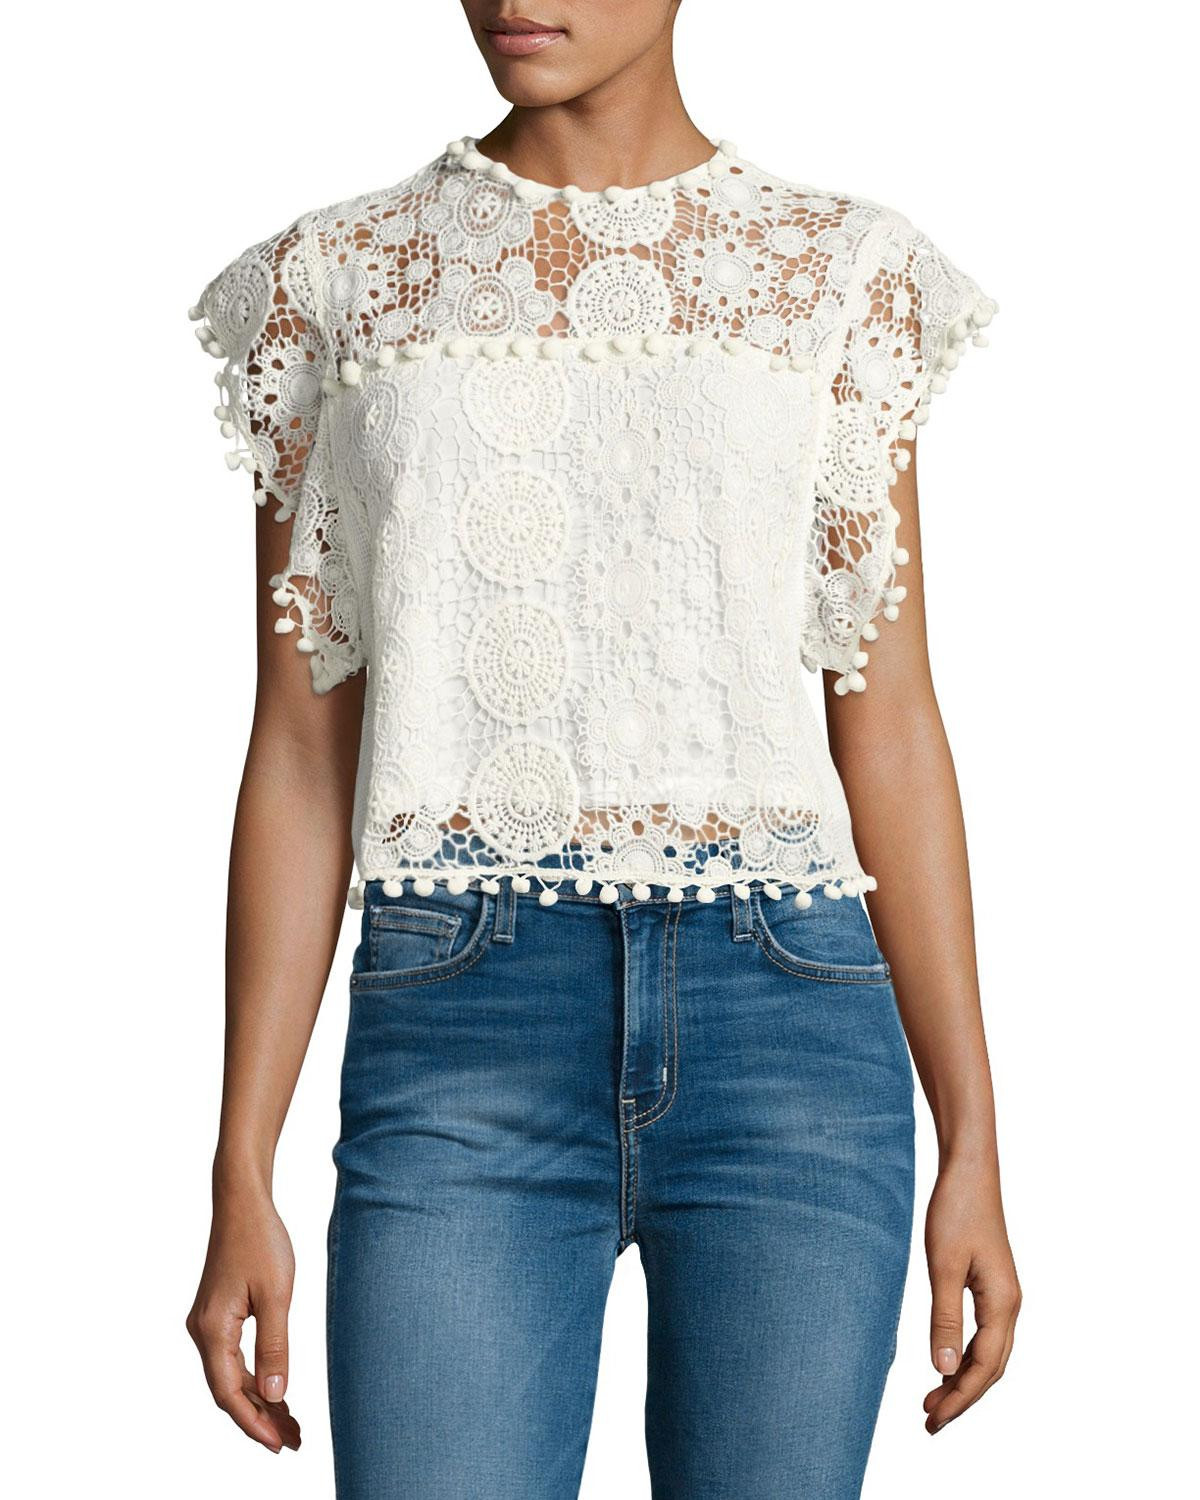 White Crochet Crop tops Awesome Lyst Tularosa Kennedy Crochet Crop top In White Of Gorgeous 46 Pics White Crochet Crop tops